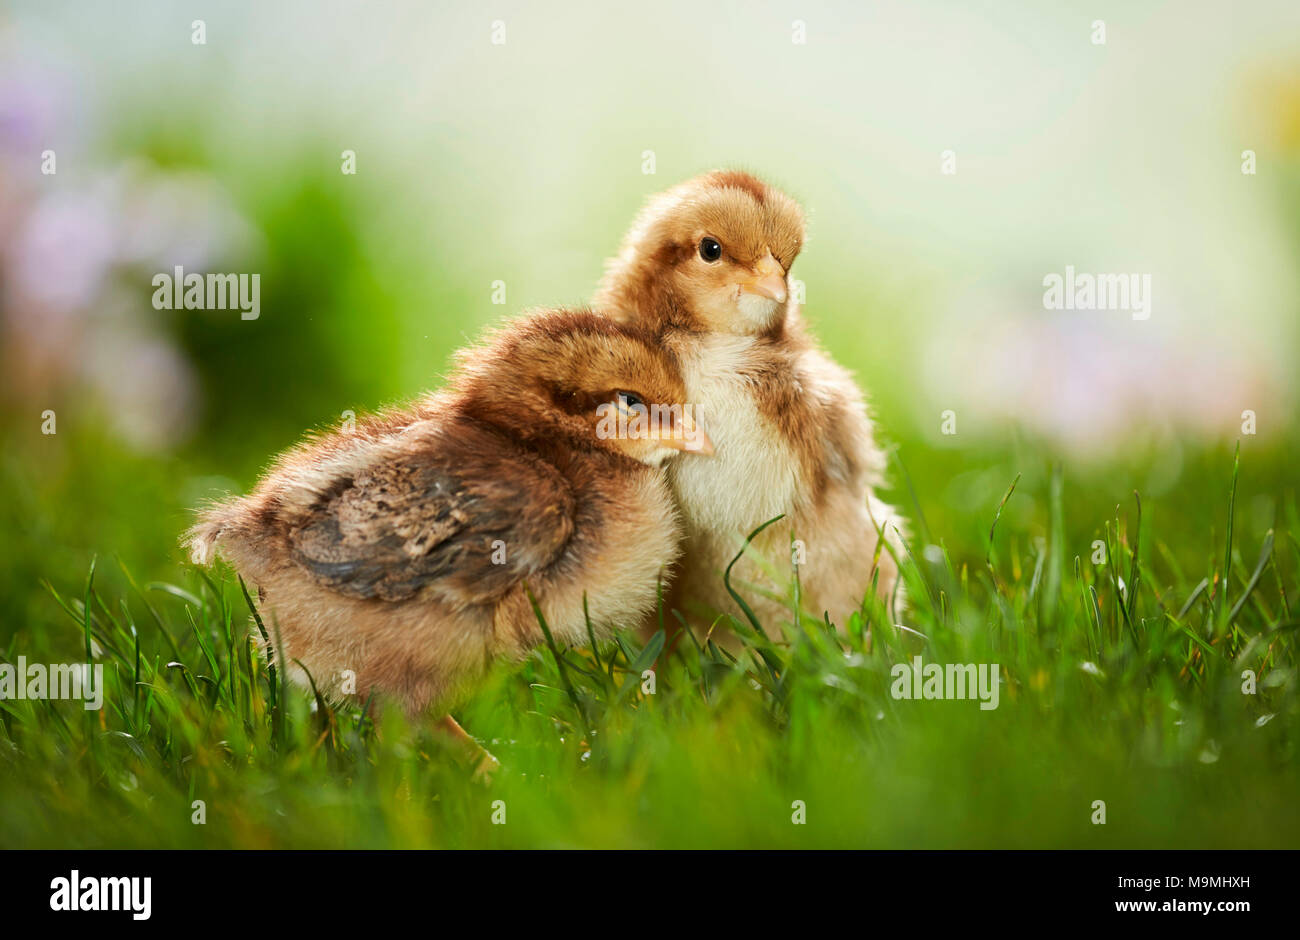 Welsummer Chicken. Pair of chickens in meadow in spring. Germany - Stock Image